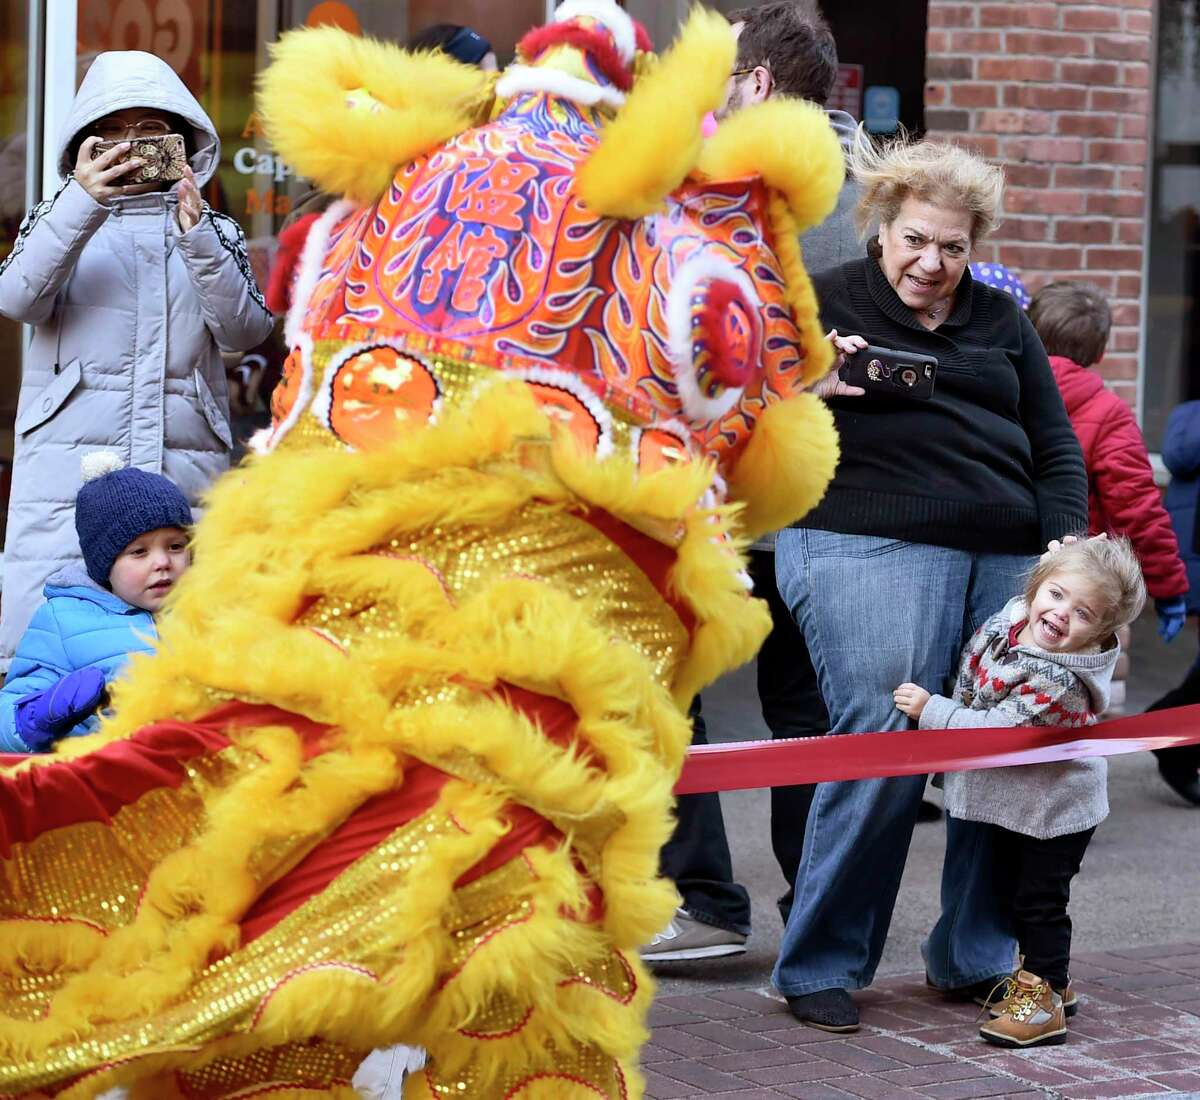 A woman and a child enjoy the sight of a Wan Chi Ming Hung Gar dancing lion during Lunarfest, celebrating the Chinese New Year, the Year of the Rat, and the Chinese culture is highlighted by New Haven's 9th Annual Lion and Dragon Dance Parade on Feb. 8, 2020.